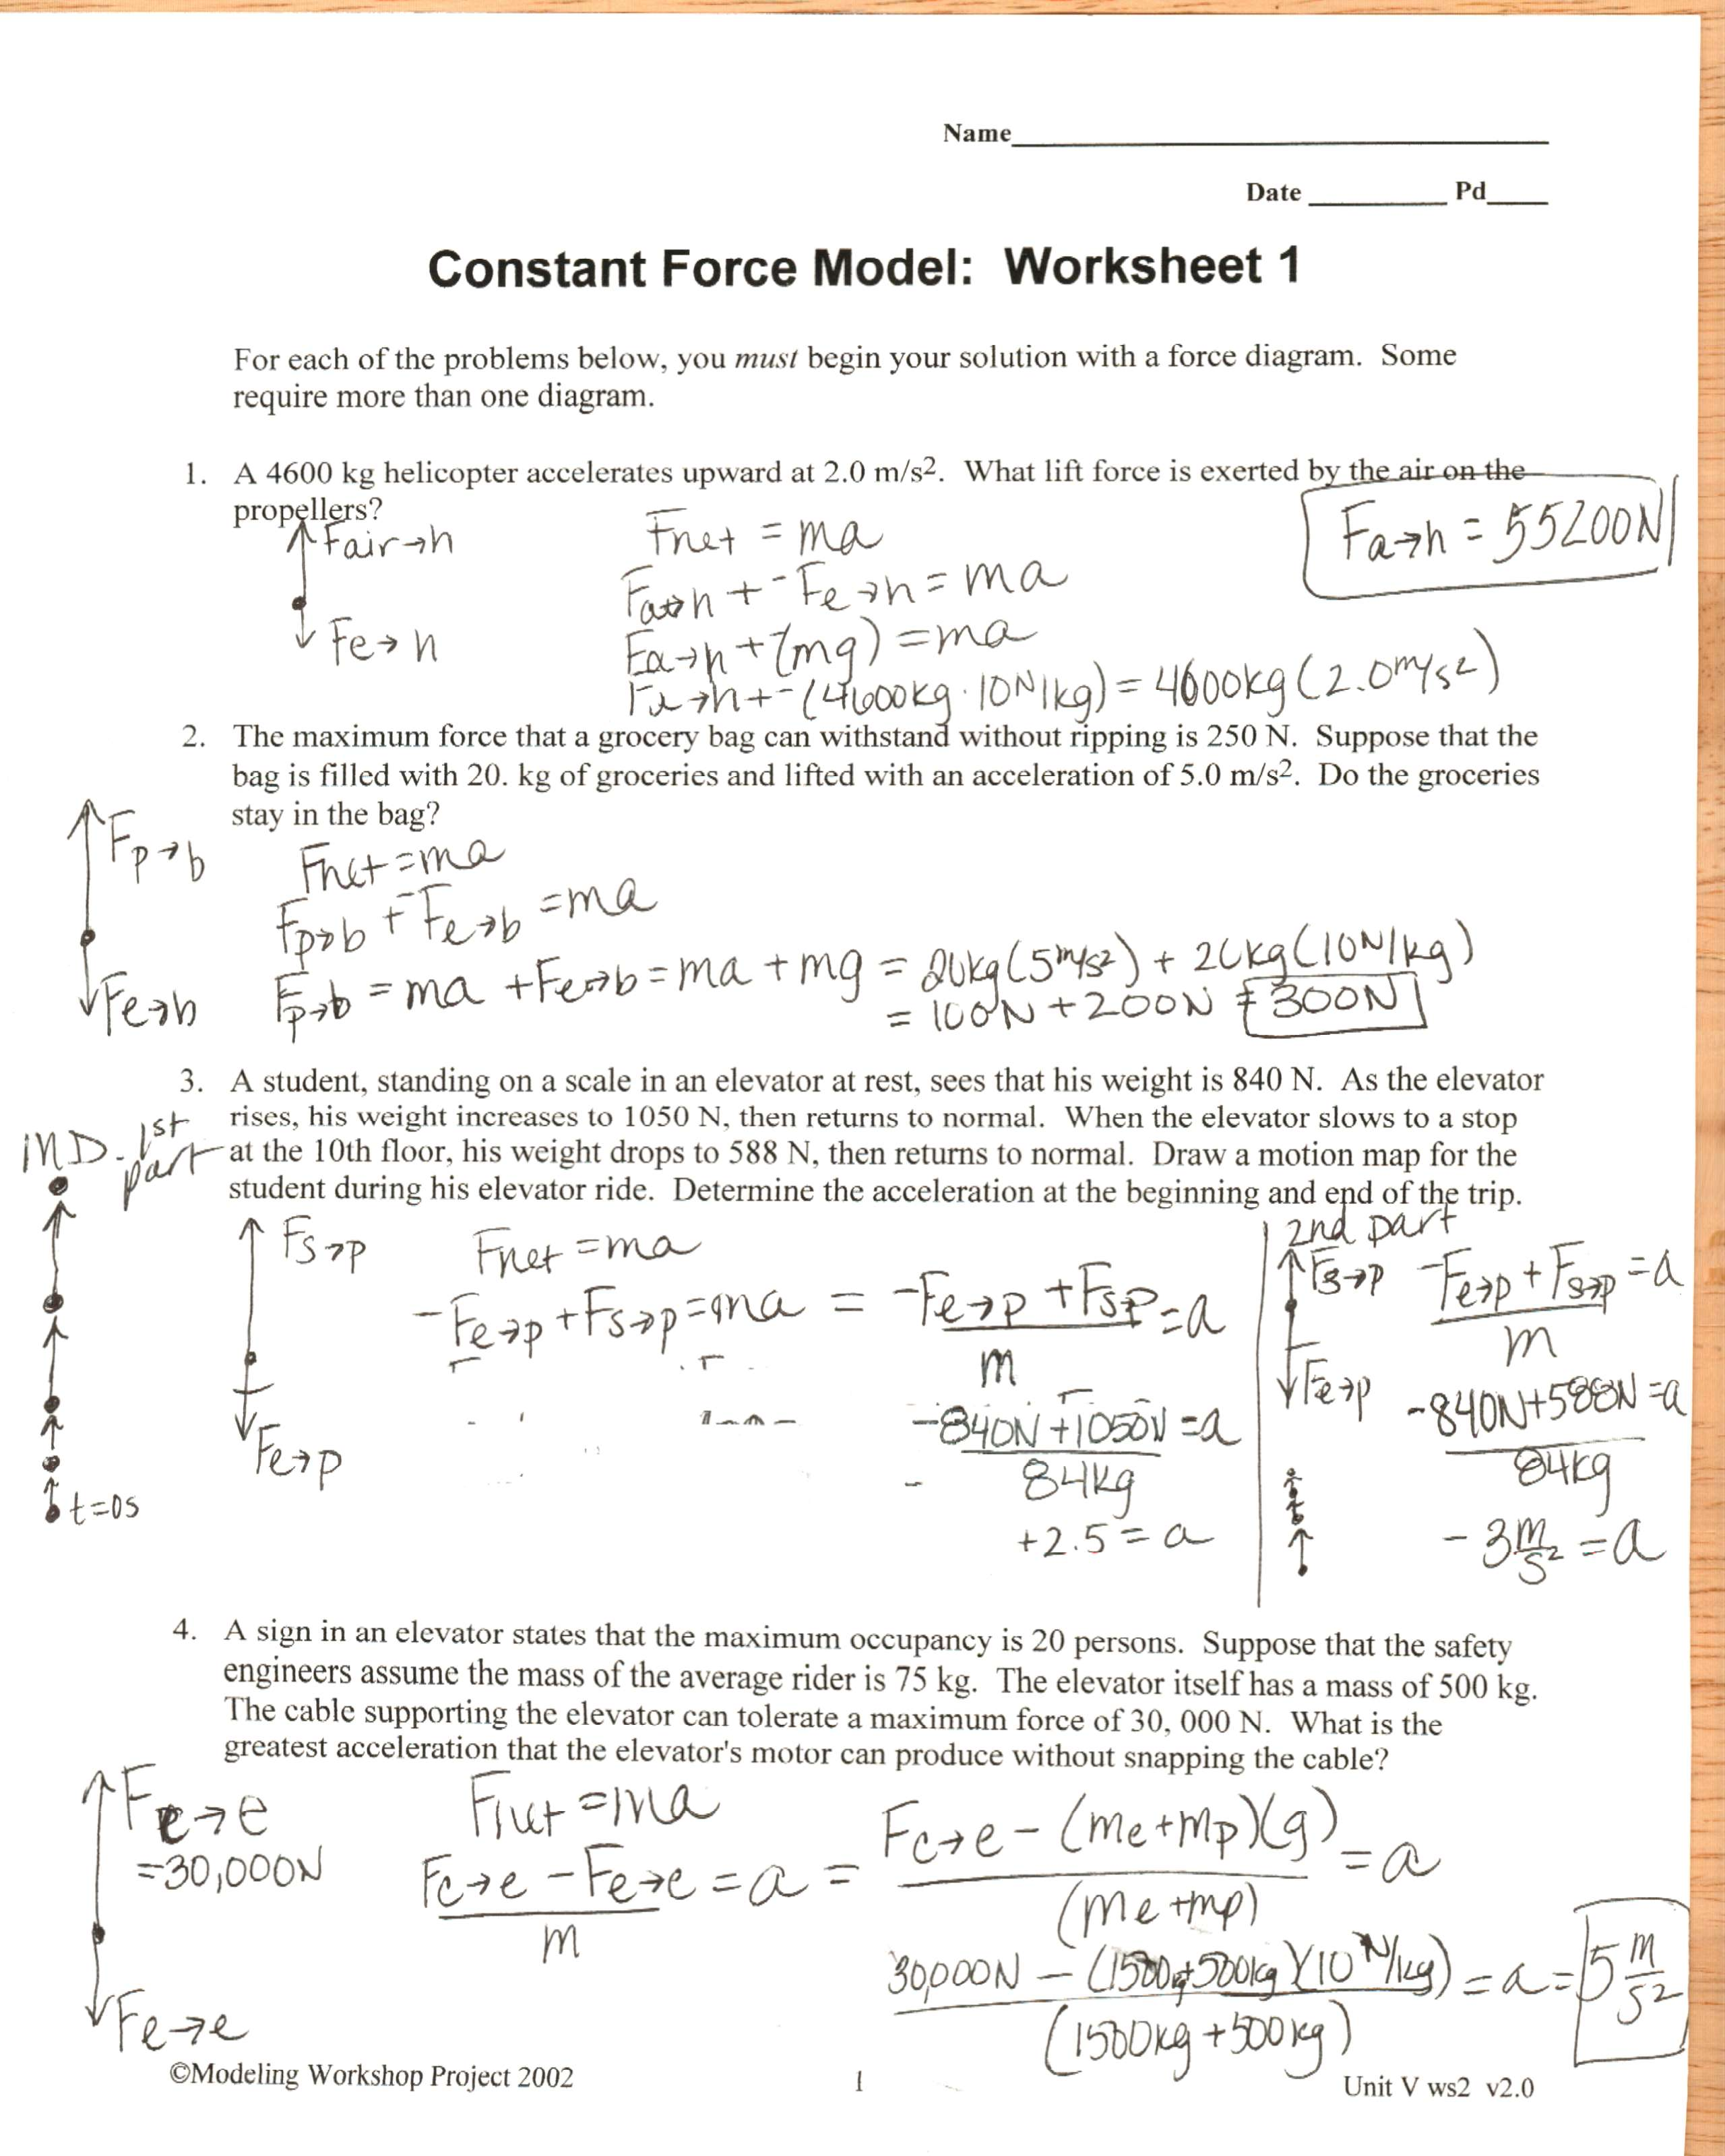 33 Circular Motion And Inertia Worksheet Answers